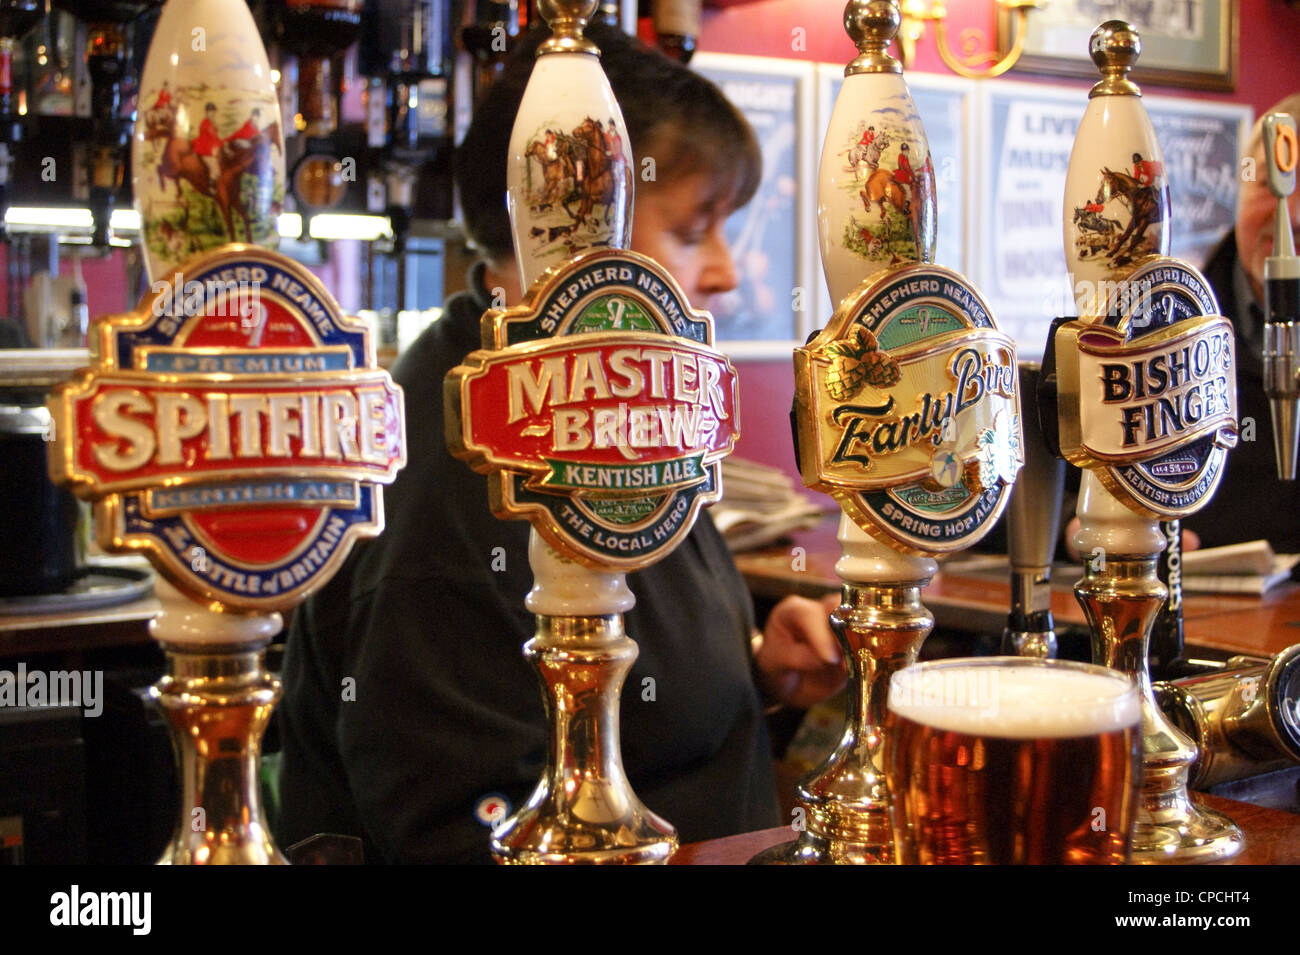 Shepherd Neame real ale handpumps and pump clip designs,  Rochester, Kent, England - Stock Image